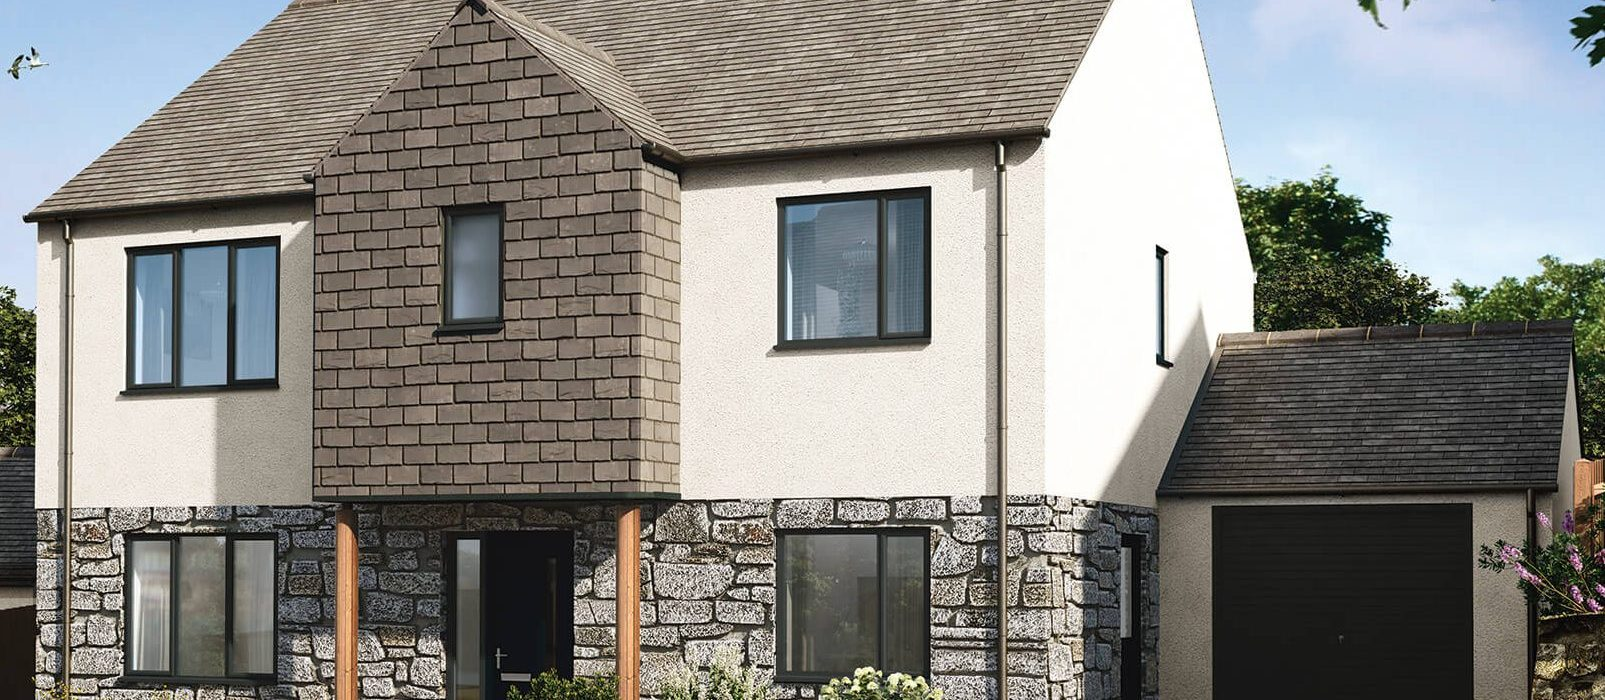 4 bedroom home HalwynMeadows Crantock whiteandgranite.jpeg 1 e1554462176109 1605x700 - NEW SHOW NOW OPEN